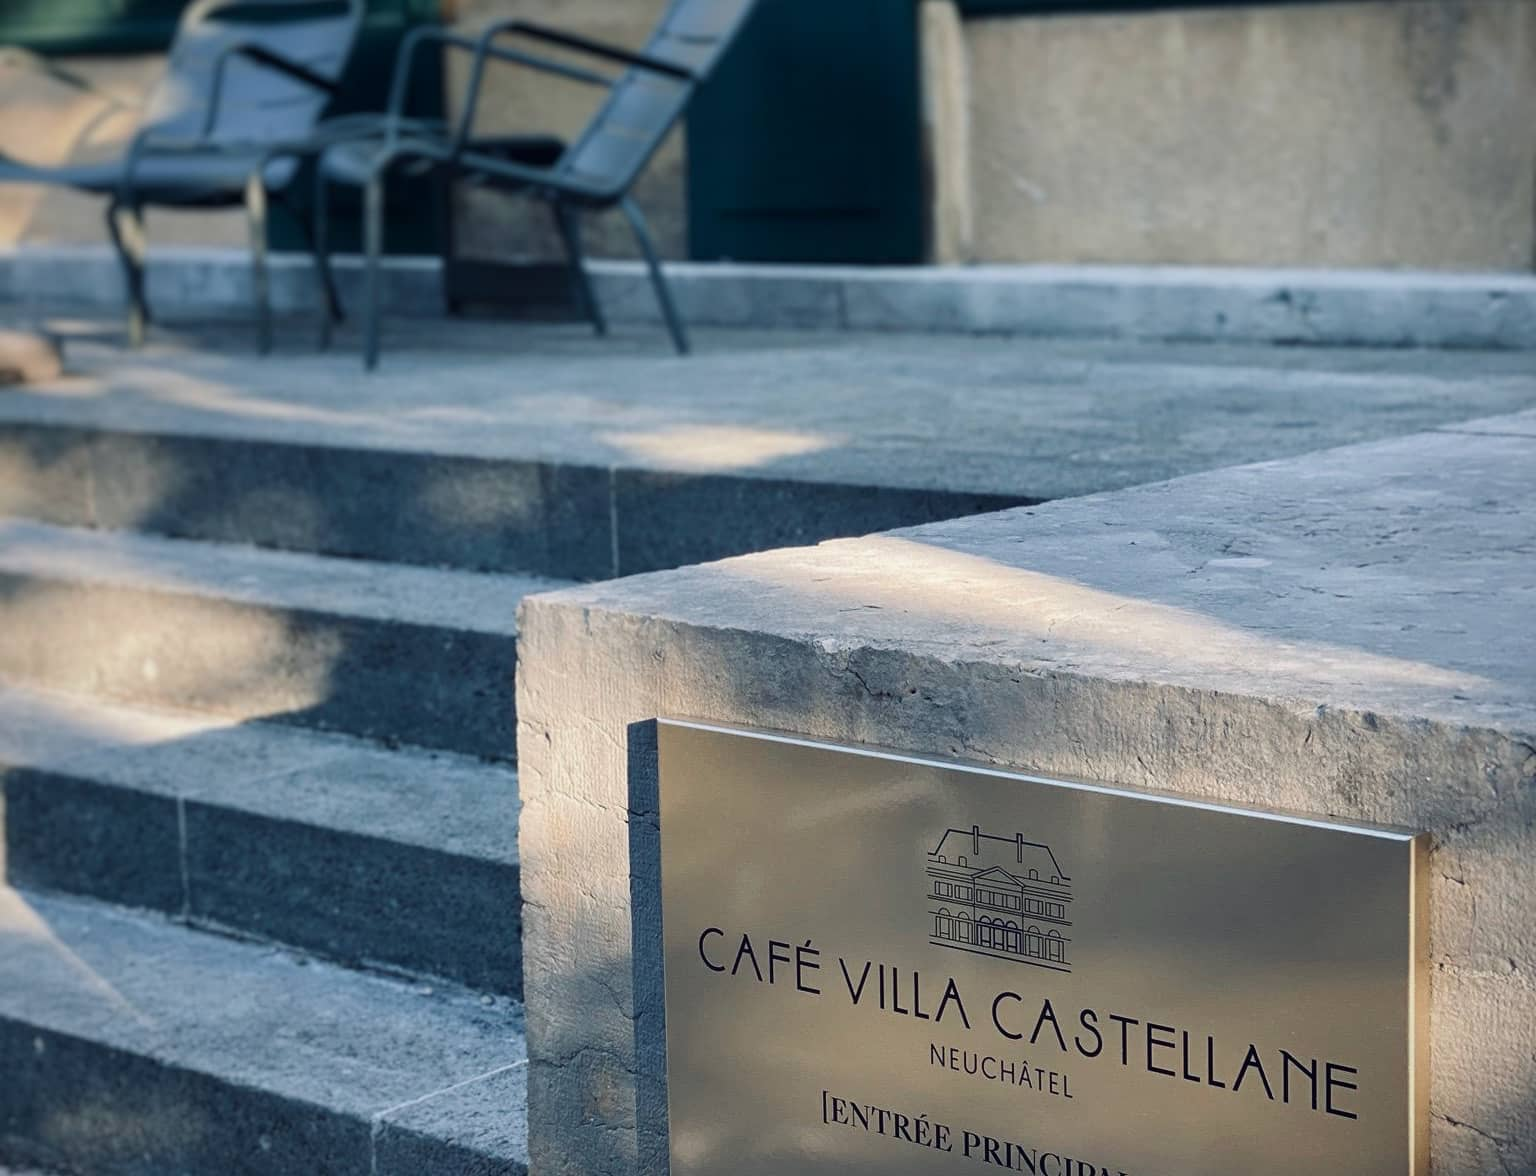 Association Villa Castellane - terrasse café